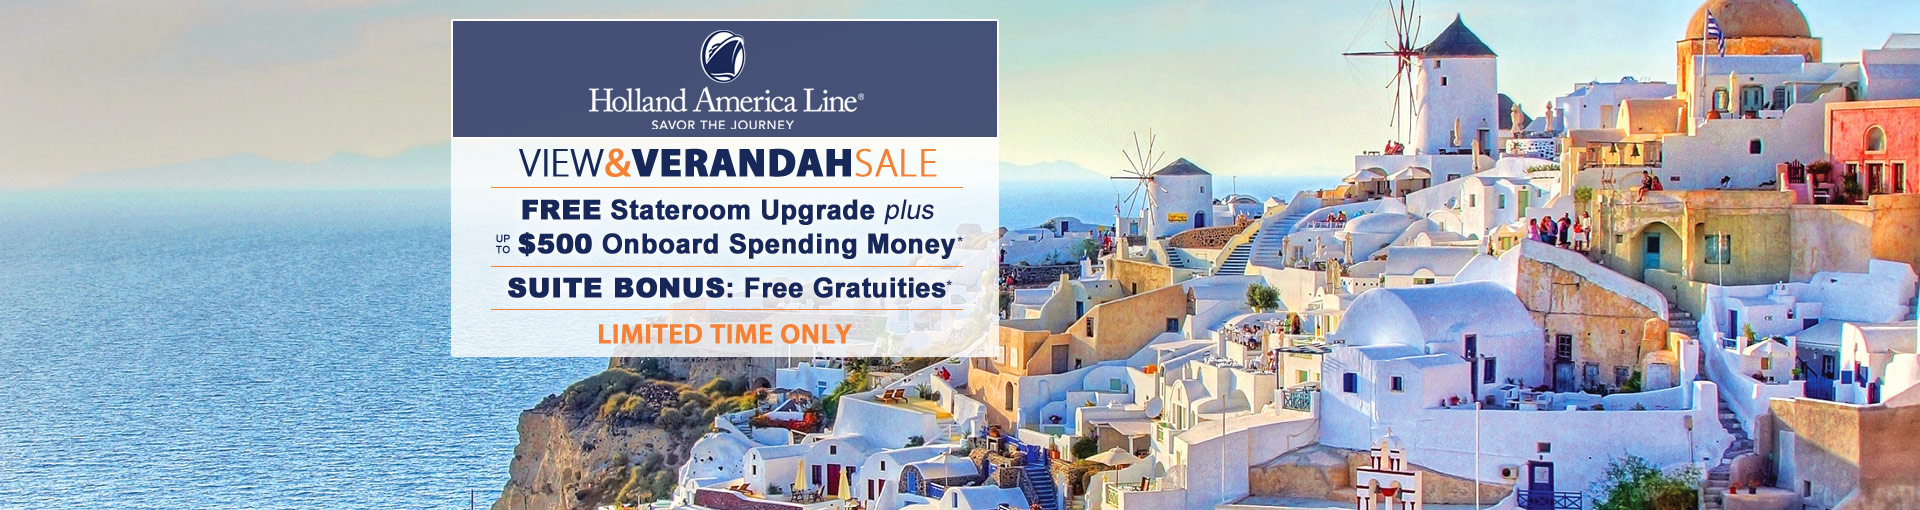 Holland America Line: FREE Gratuities for 2020 Europe